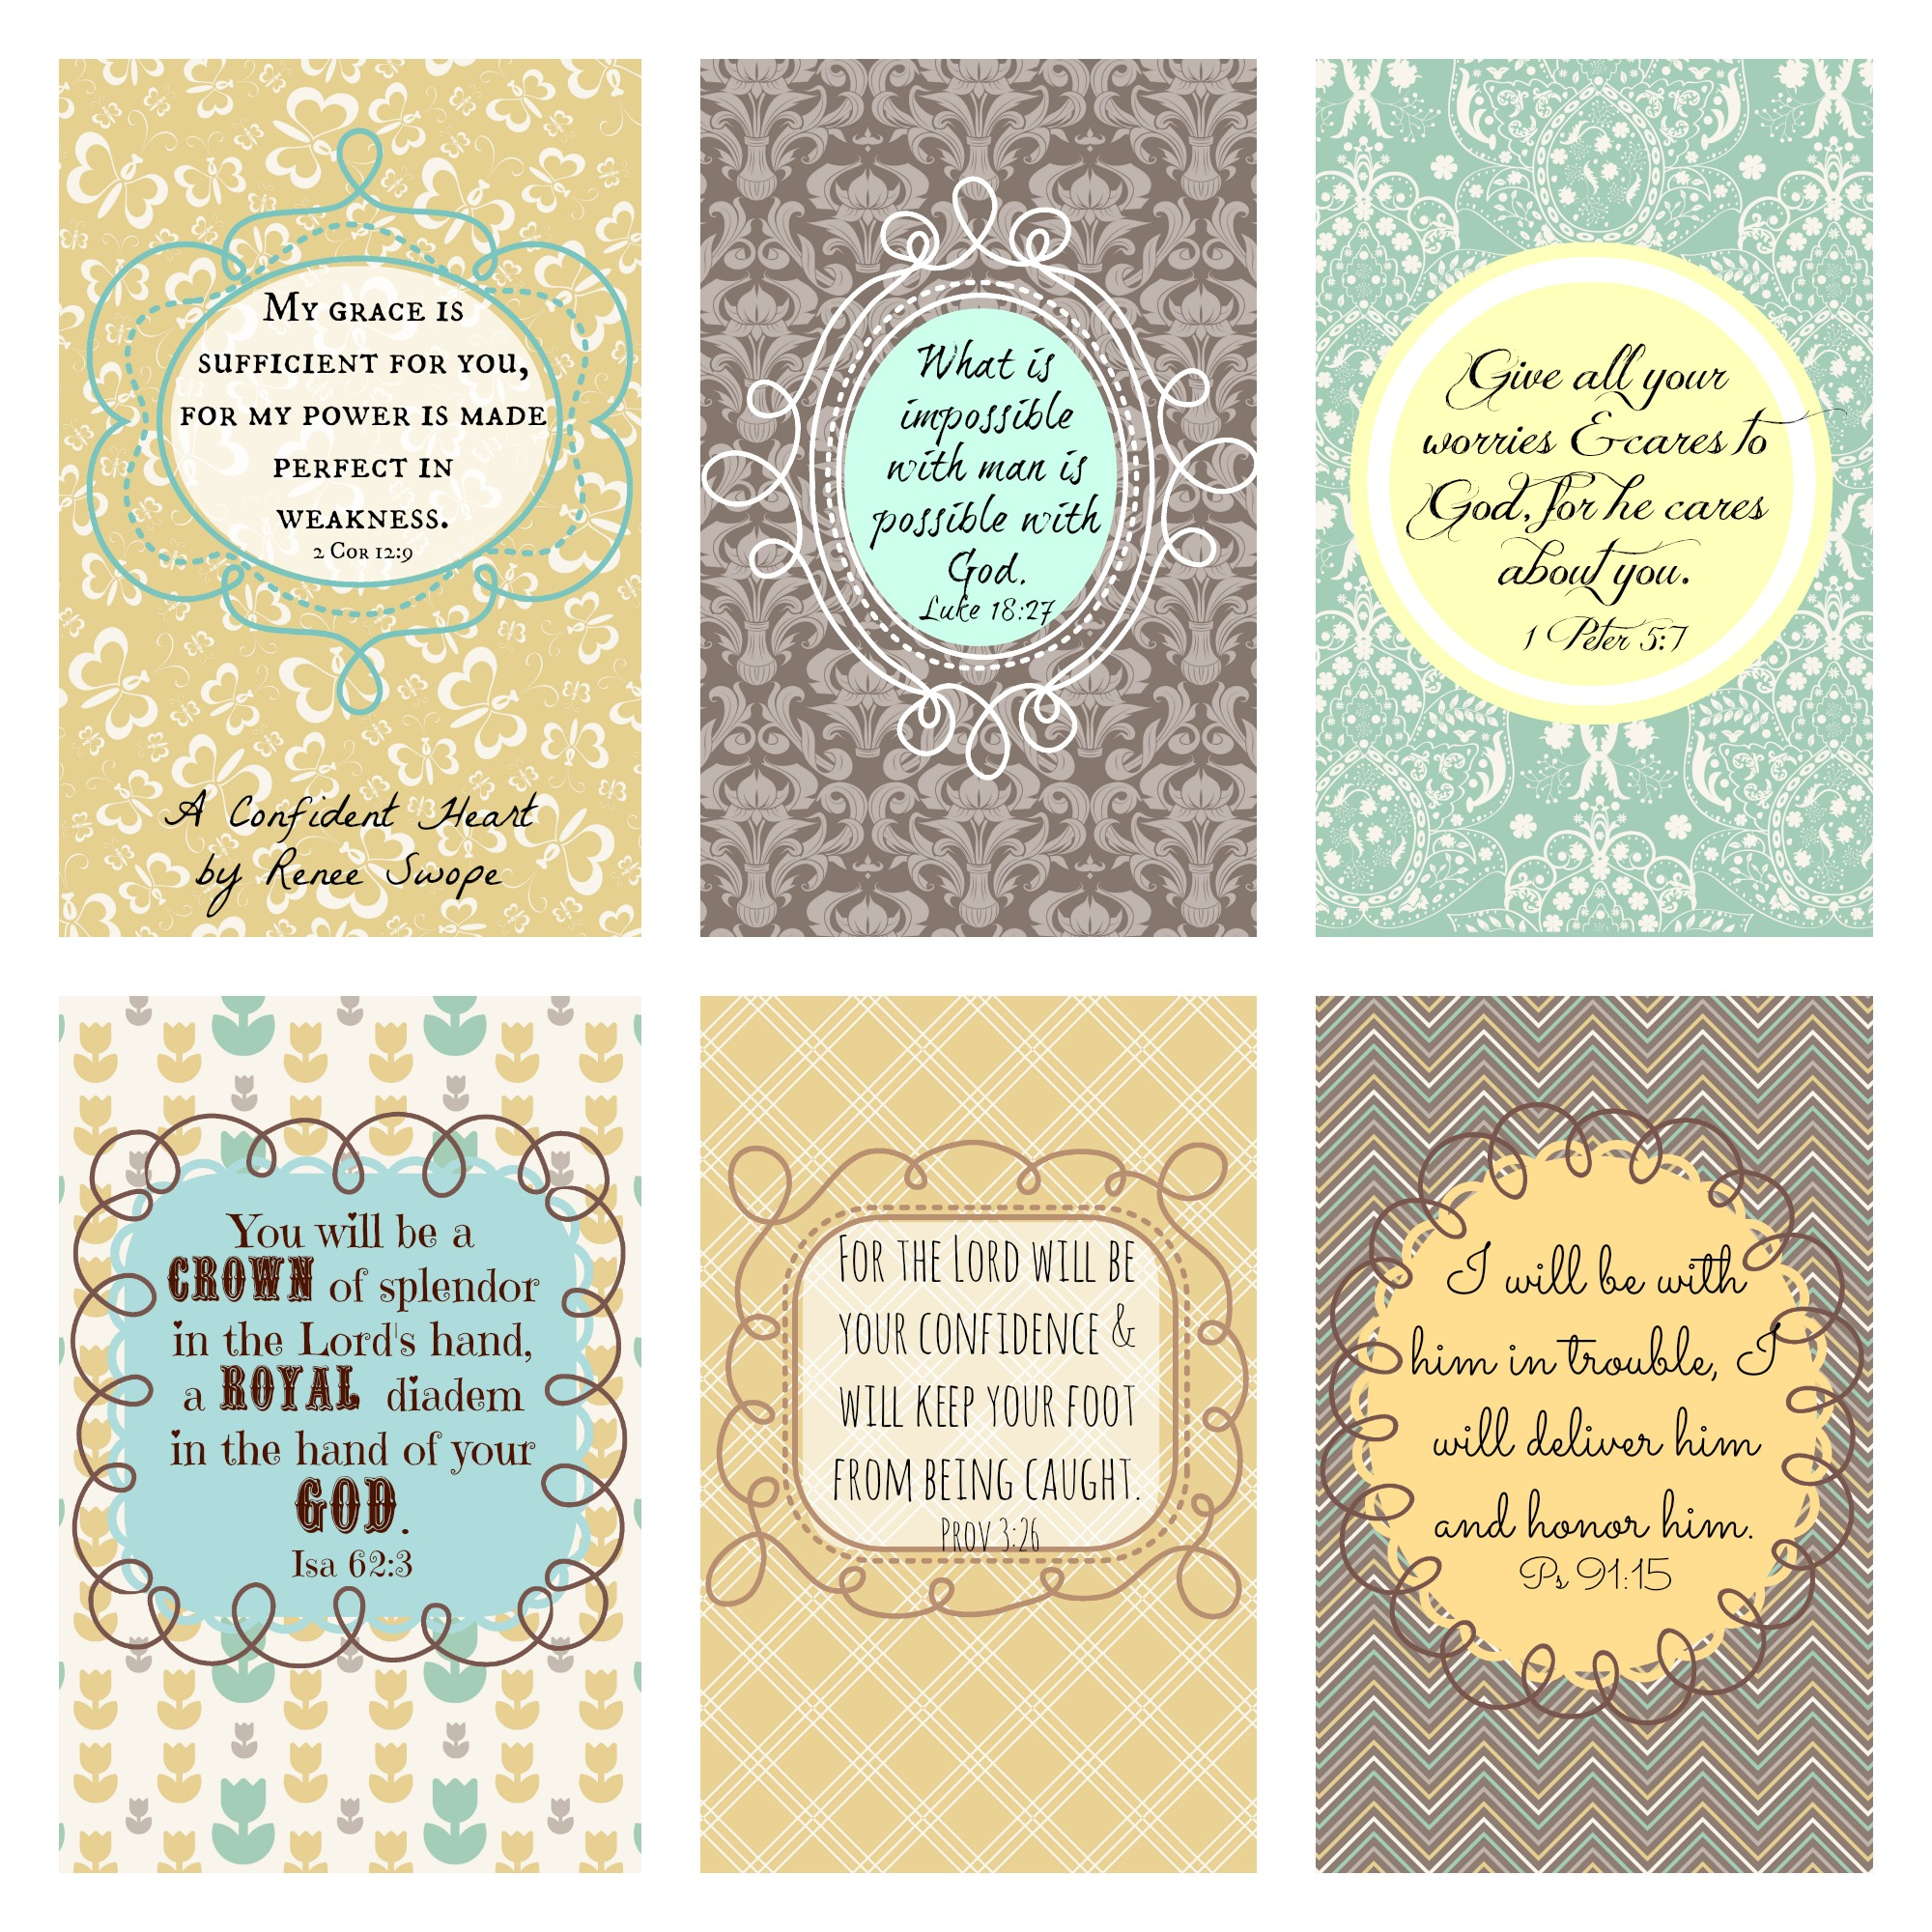 6 Images of Encouraging Bible Verse Cards Printable Free